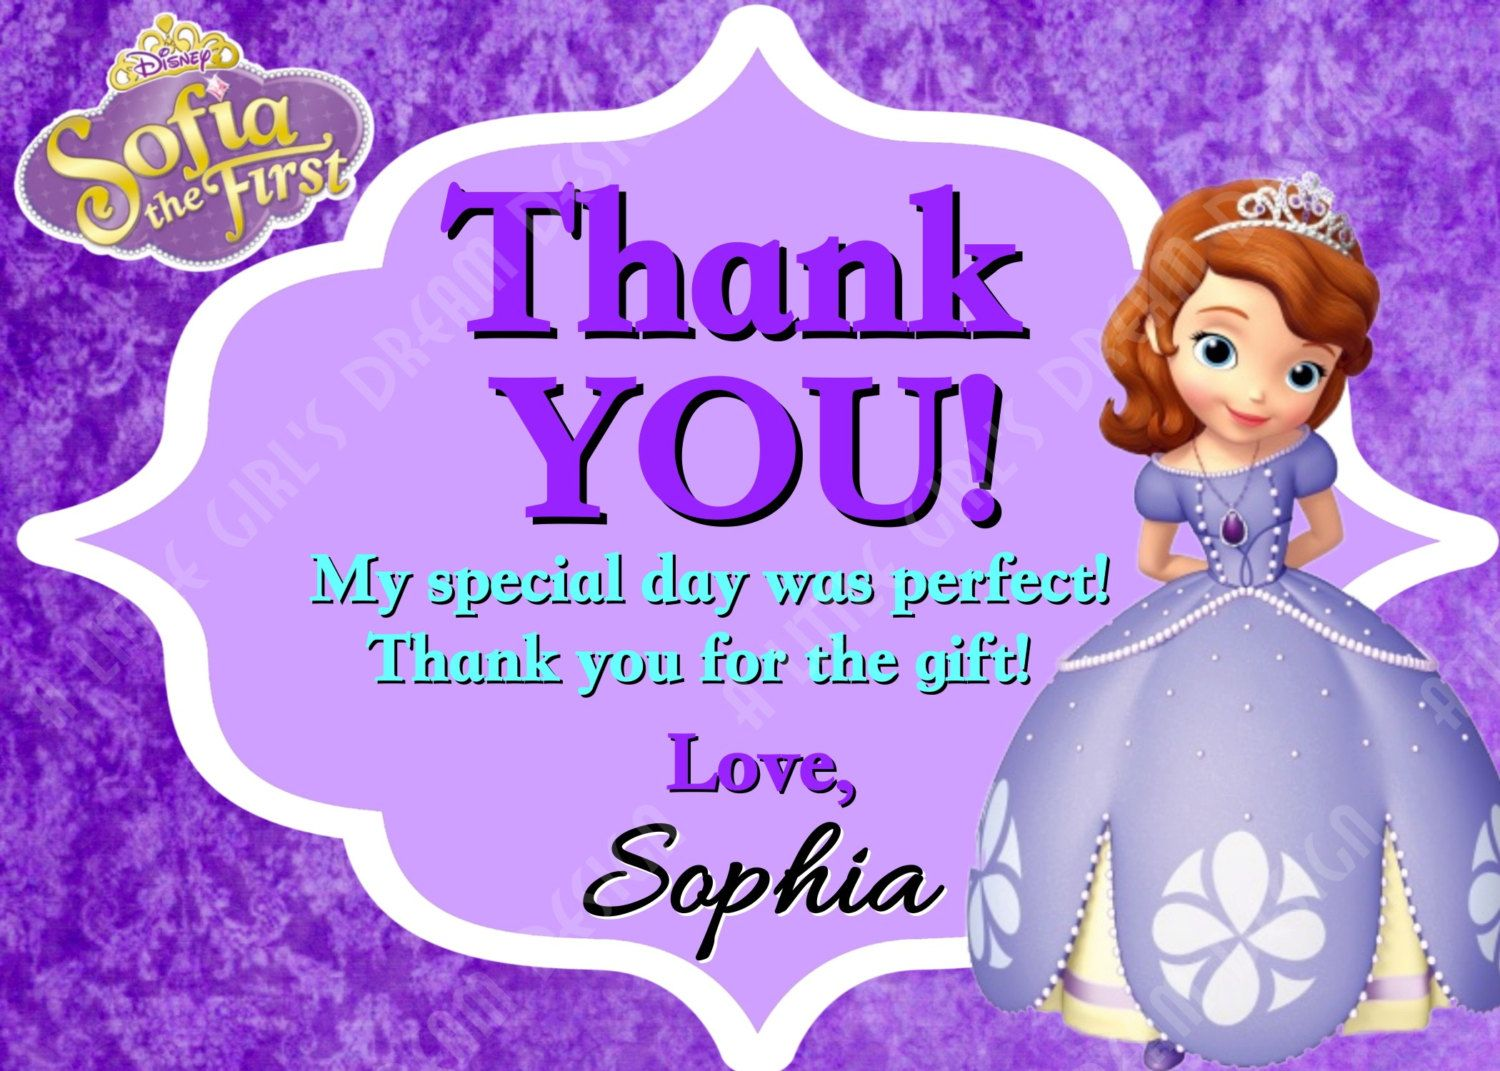 Princess Sofia The First Custom Personalized Birthday Thank You Card